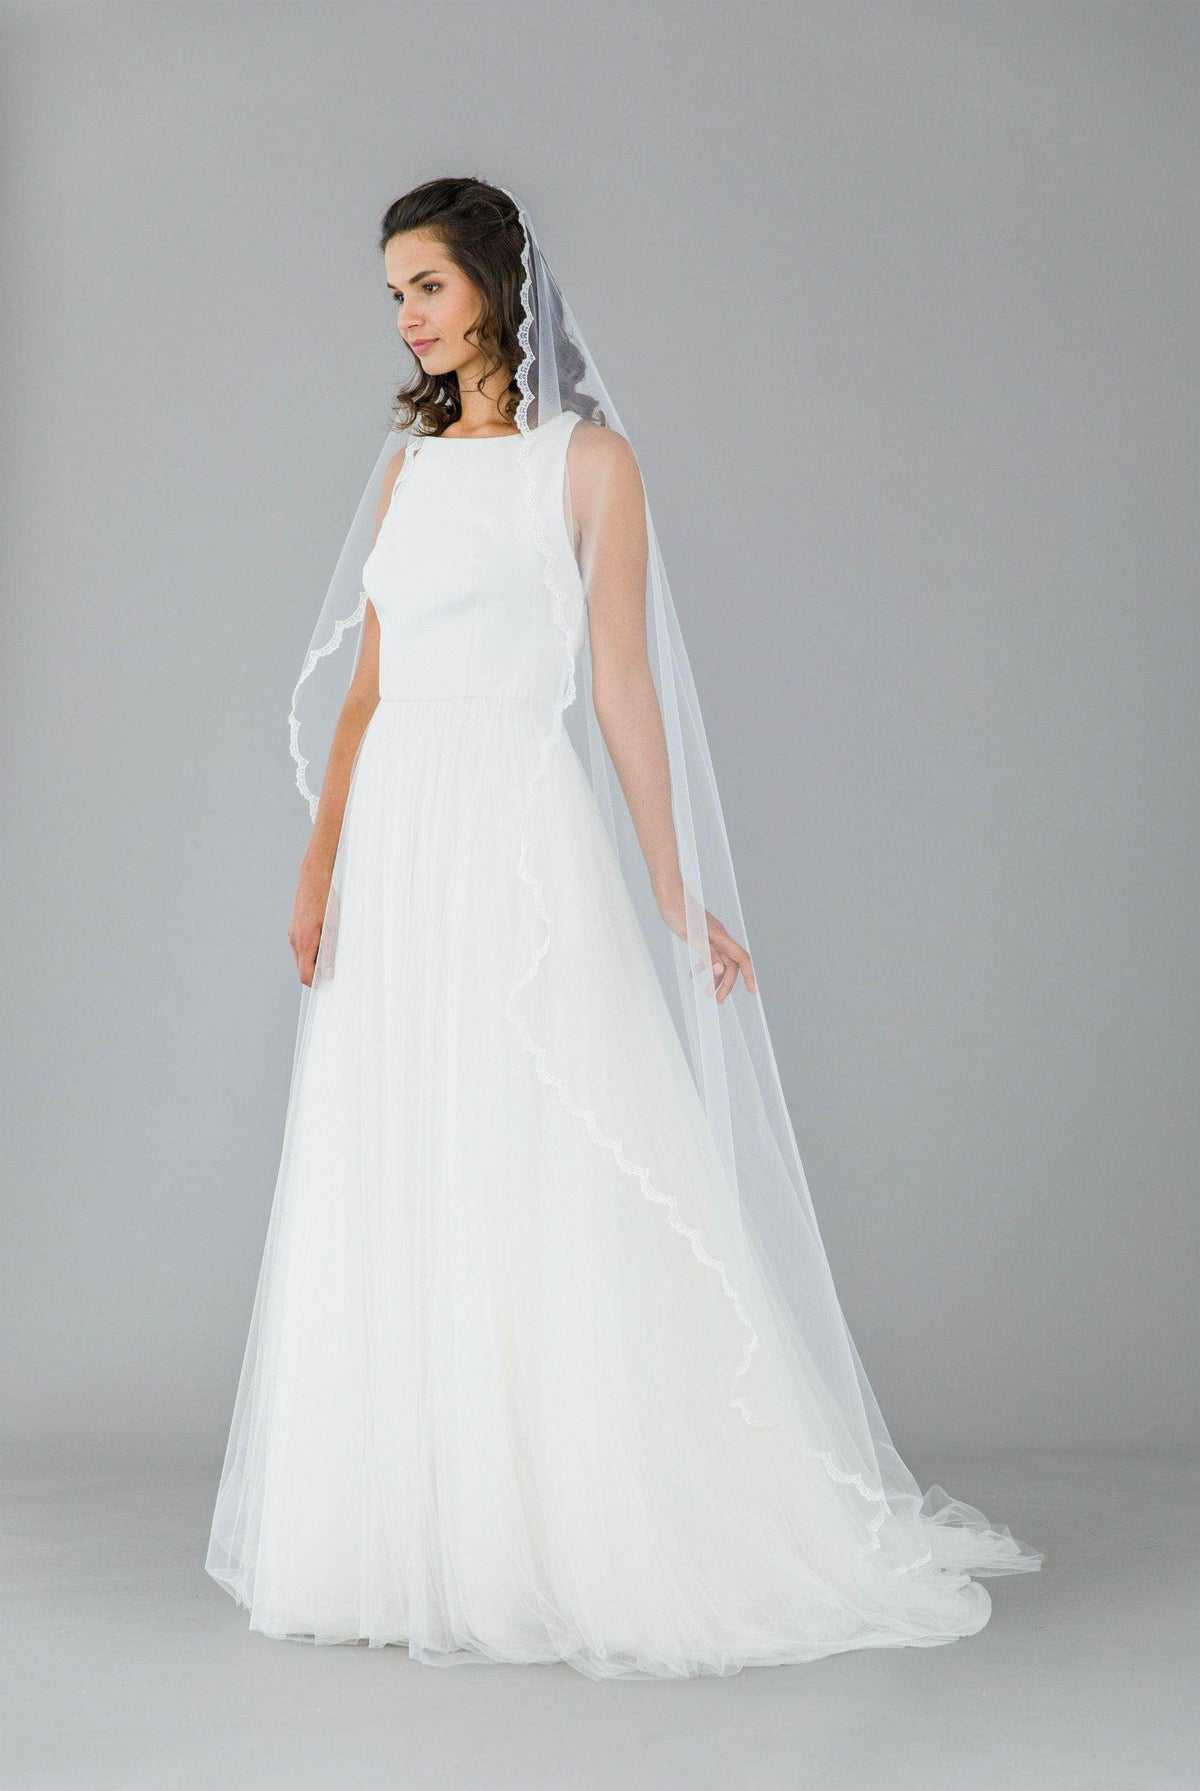 Wedding Veil Full lace edged barely there wedding veil - 'Adeline'